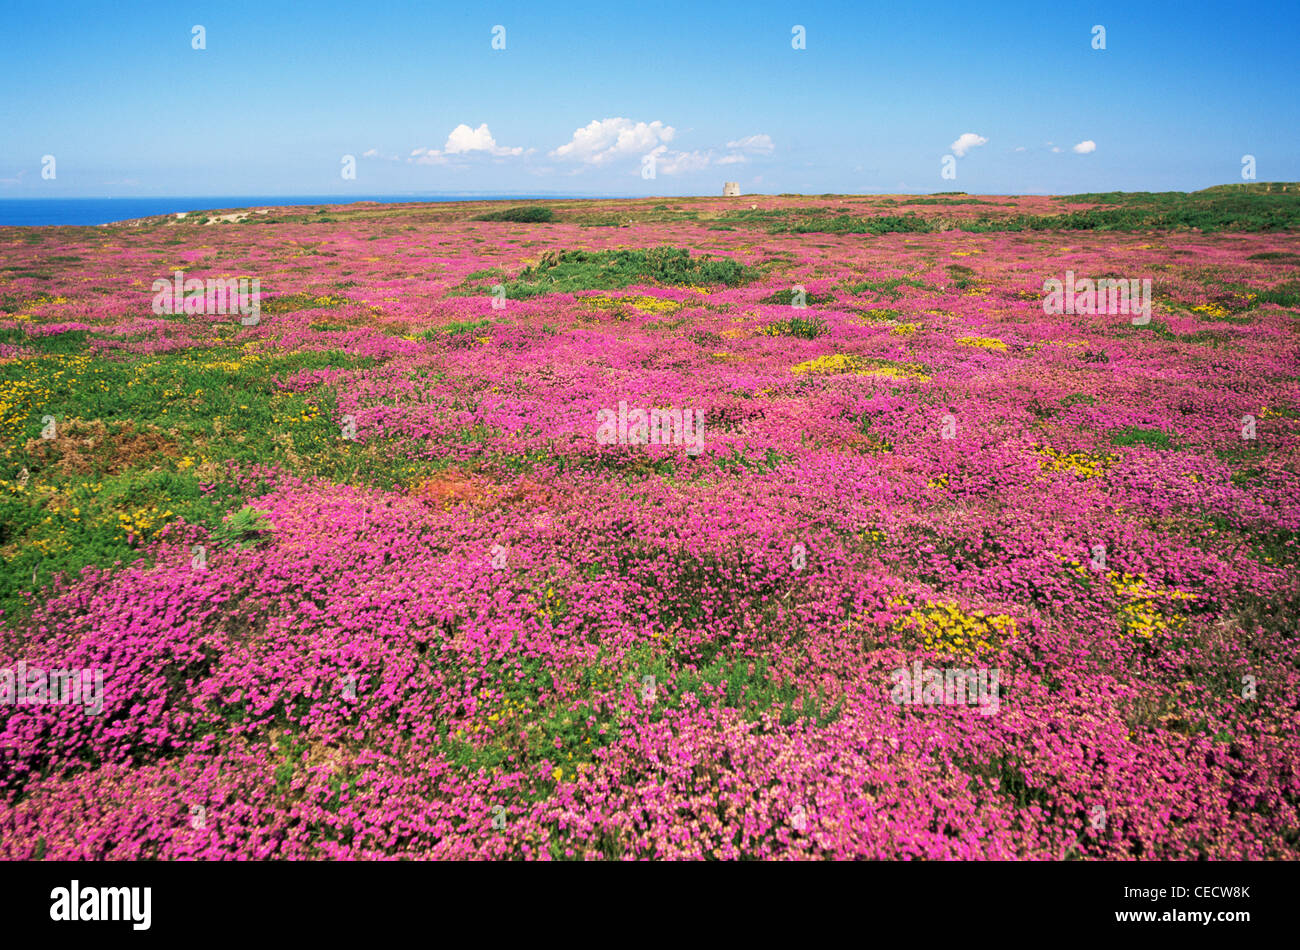 United Kingdom, Great Britain, Channel Islands, Jersey, Wild Flowers, Patterns of Heather and Gorse in full Bloom - Stock Image